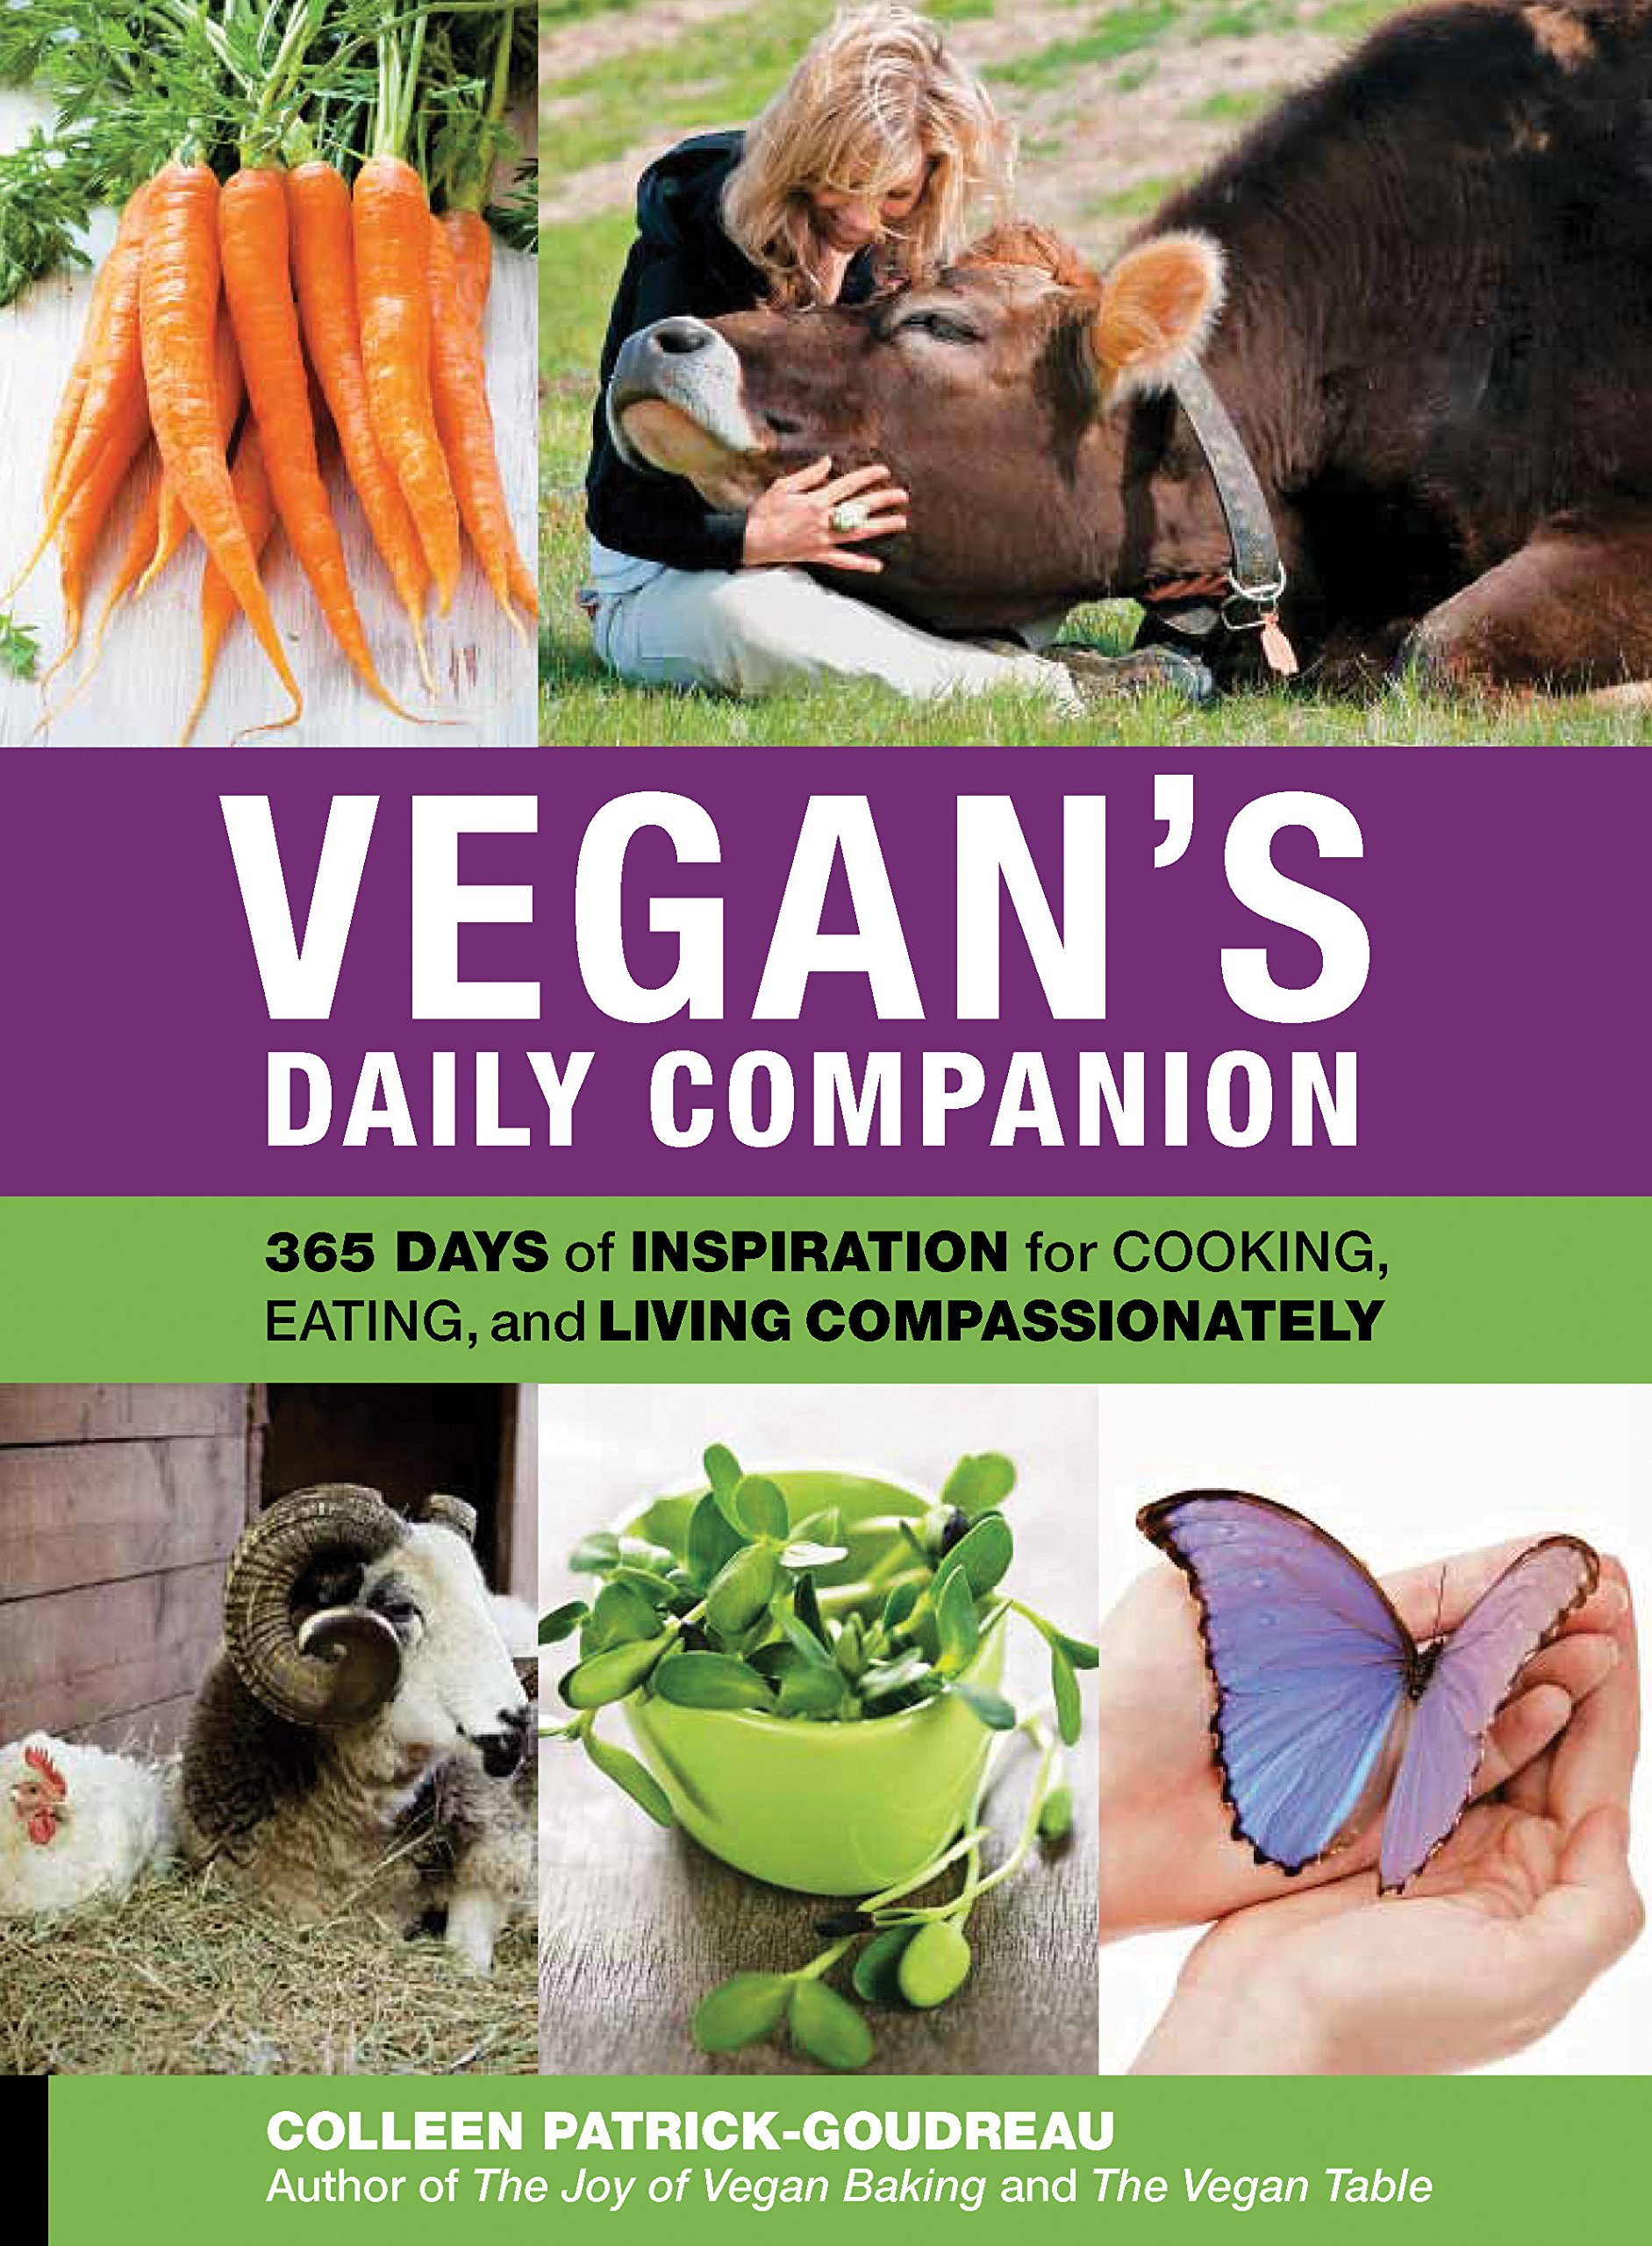 Download Vegan's Daily Companion: 365 Days of Inspiration for Cooking, Eating, and Living Compassionately PDF